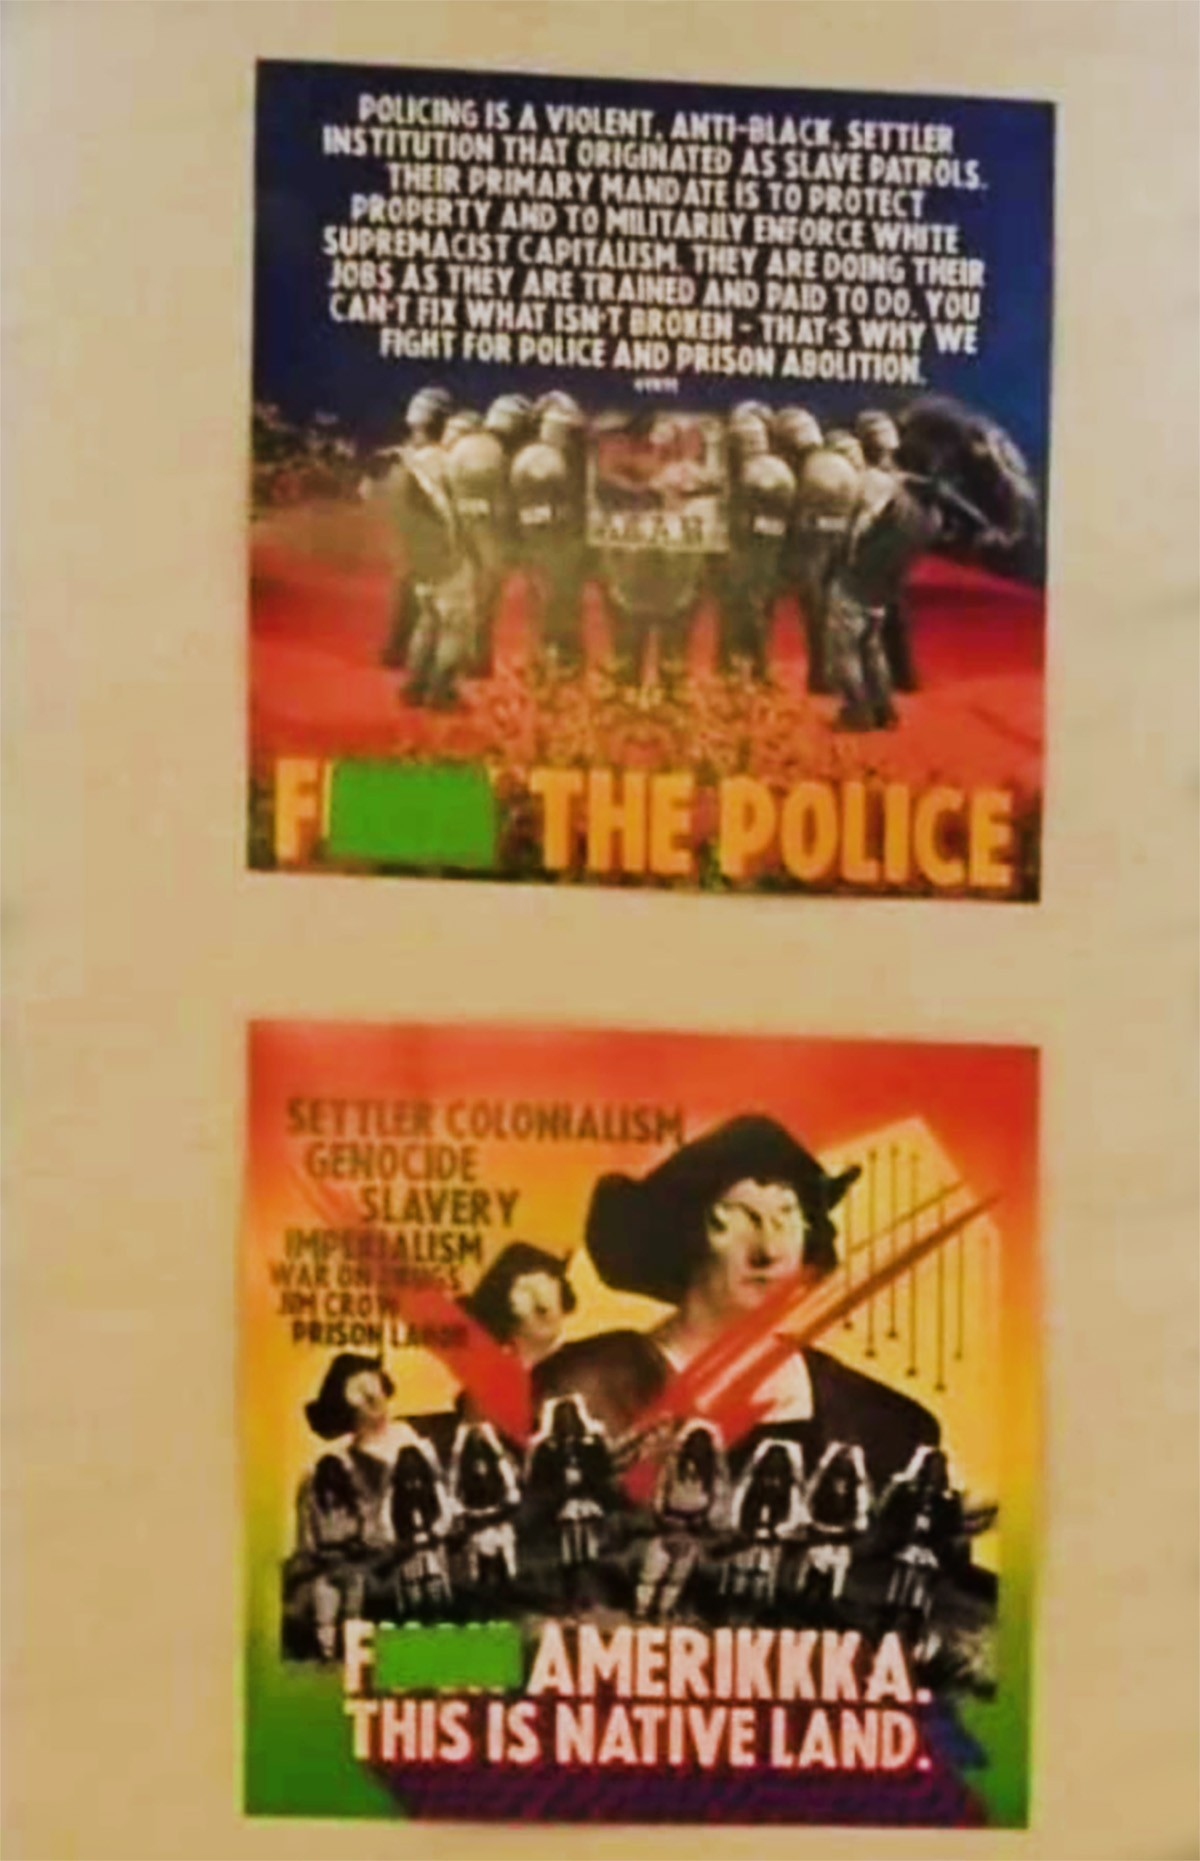 Propaganda posters on the wall of a LAUSD high school classroom. (PDE) [brightened for clarity].